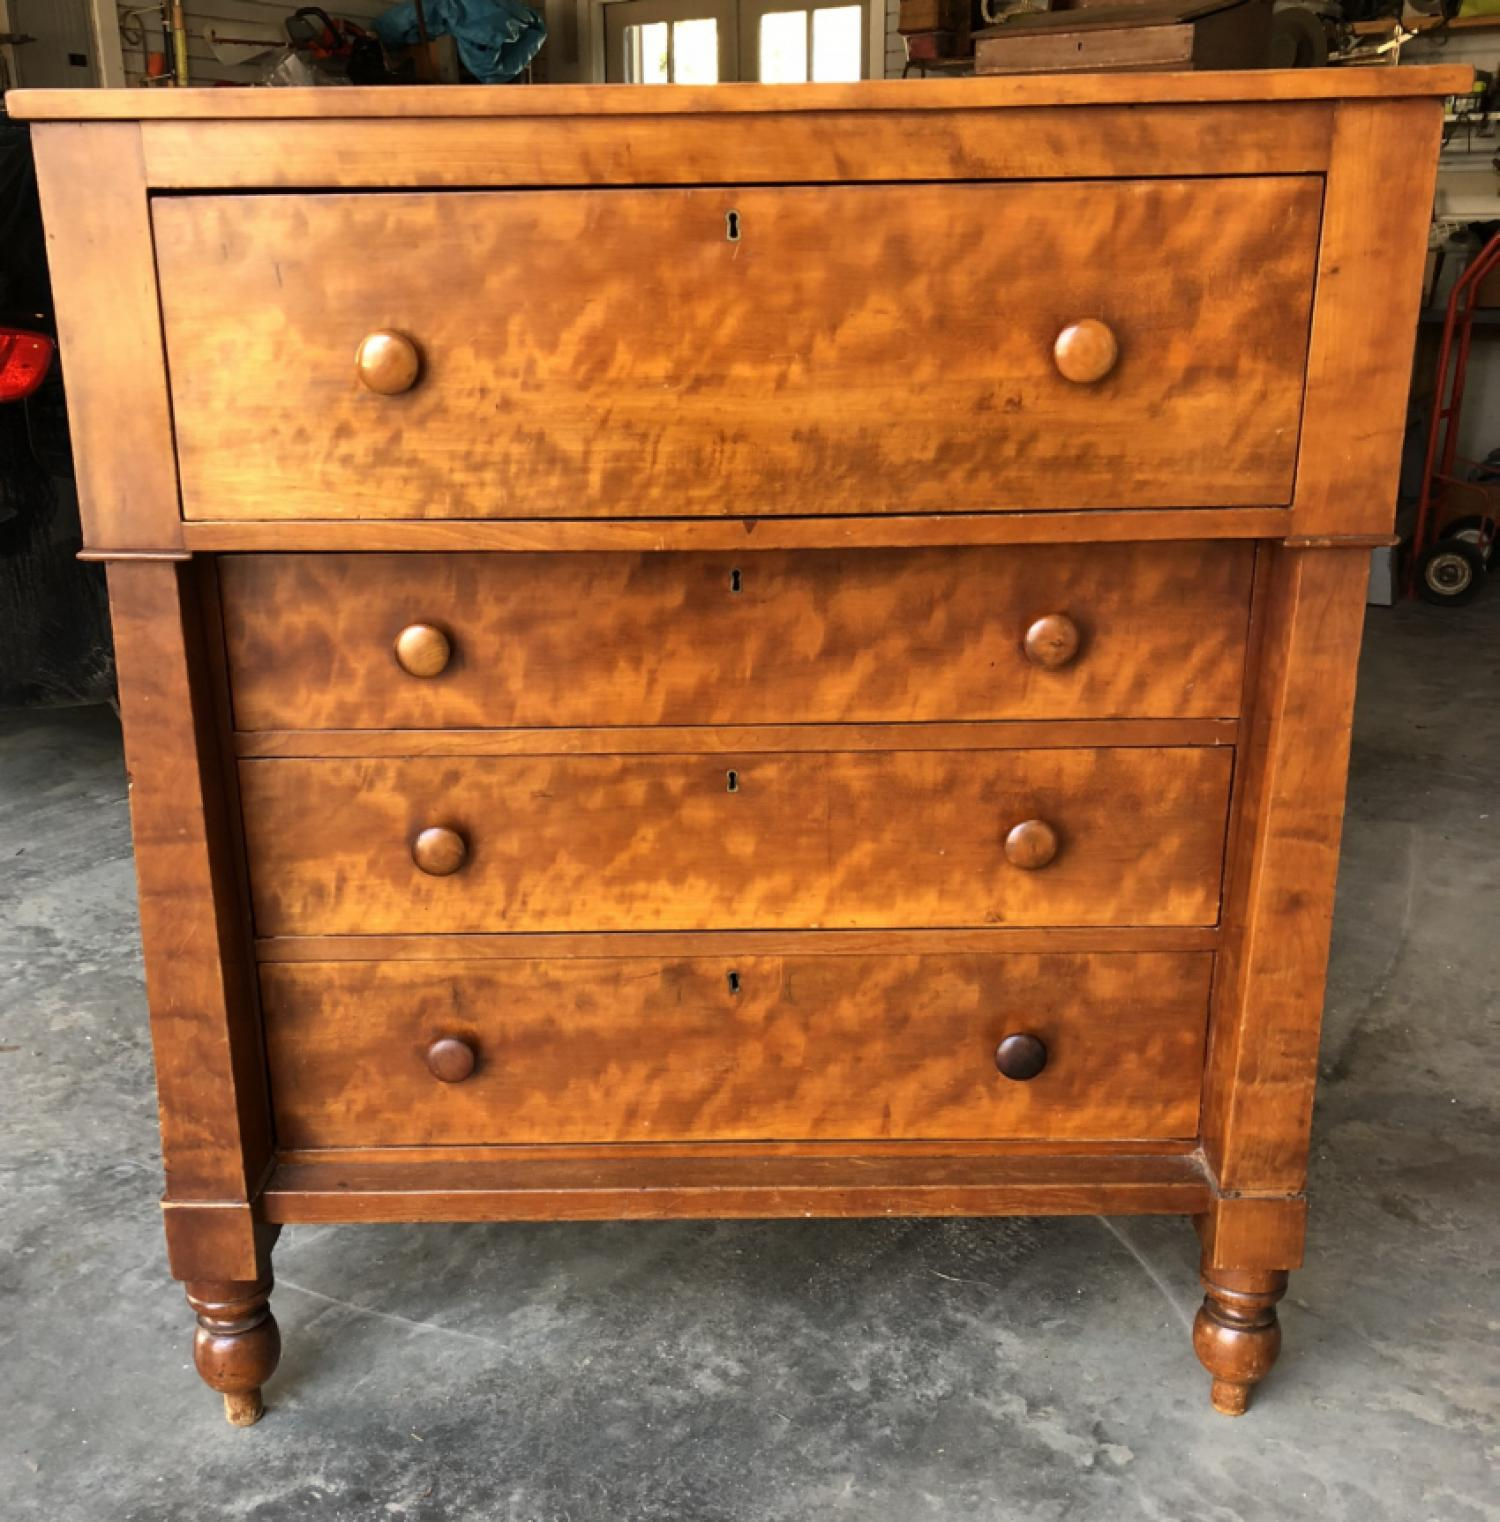 Southern cherry chest of drawers c1830-40